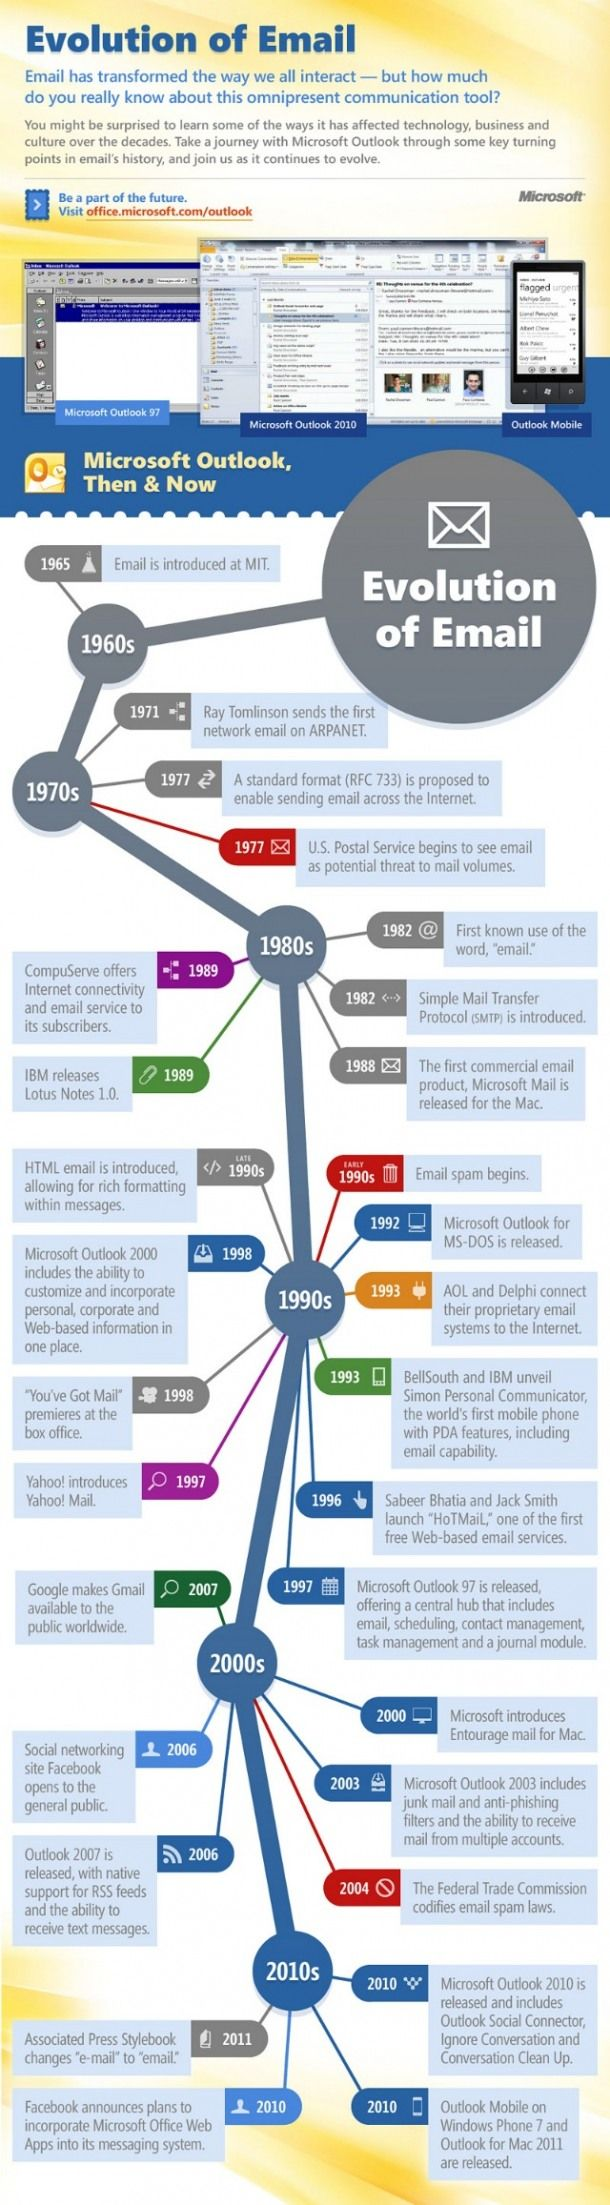 La evolucion del email #infografia - Evolution of Email #infographic